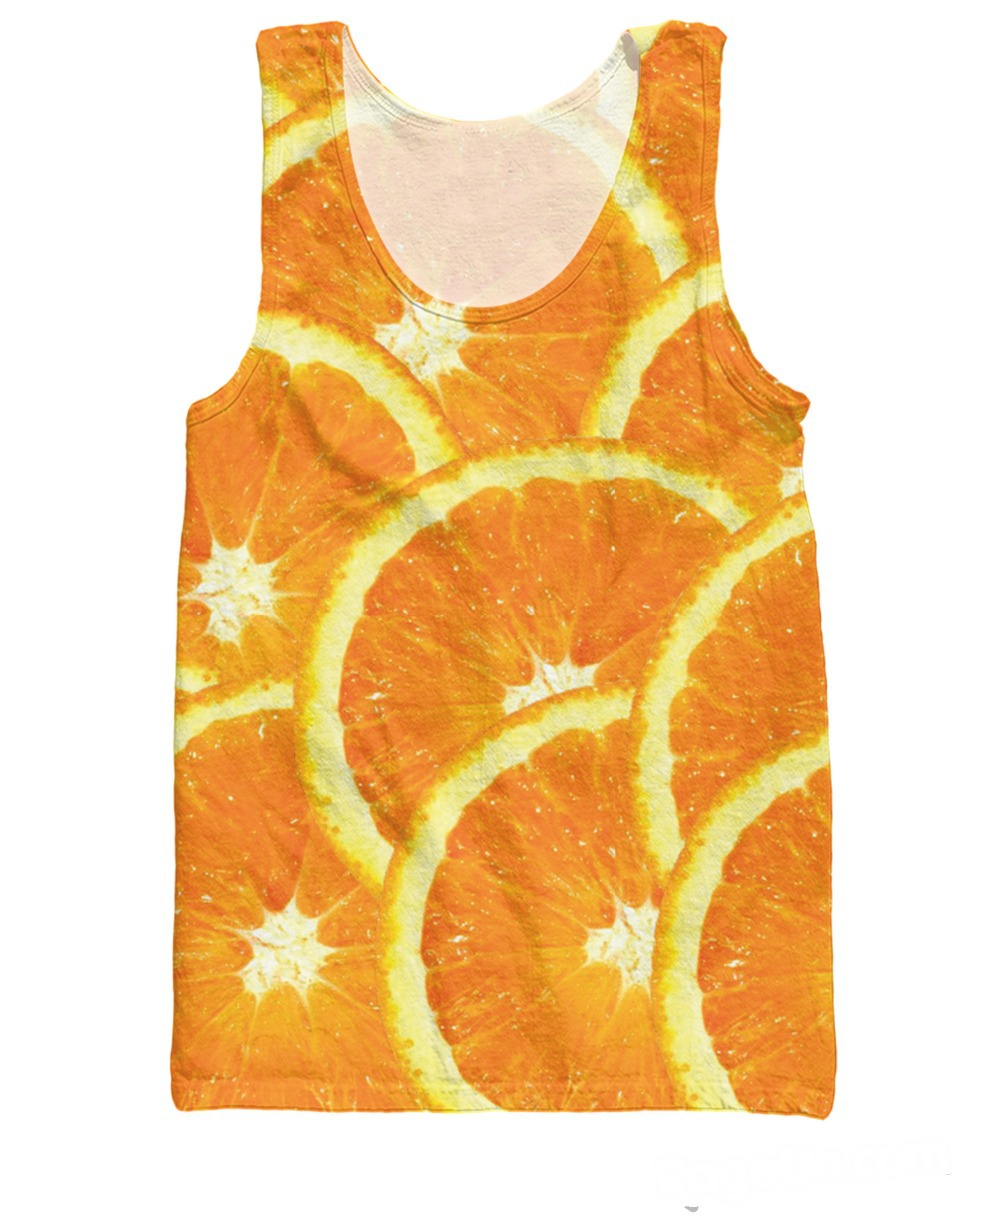 RuiYi Women Men 3d tees Vest Jersey Oranges awesome Tank Top citrusy fruit Fashion Clothing Shirts Tops Plus Size Free Shi